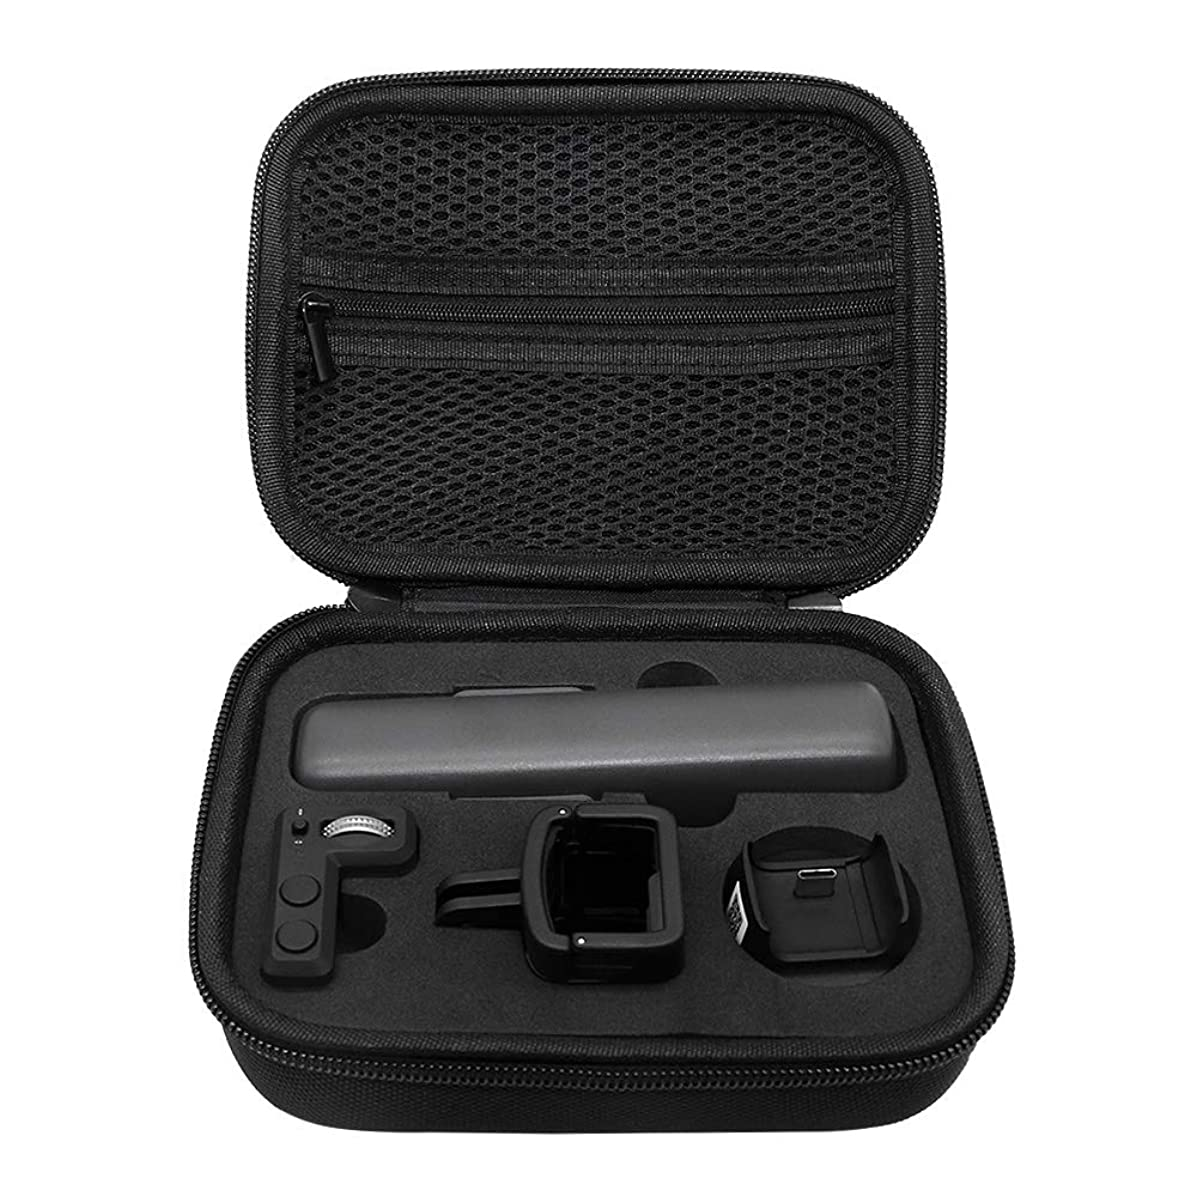 YSTFLY Storage Hard shell Carrying Case for OSMO Pocket Accessories